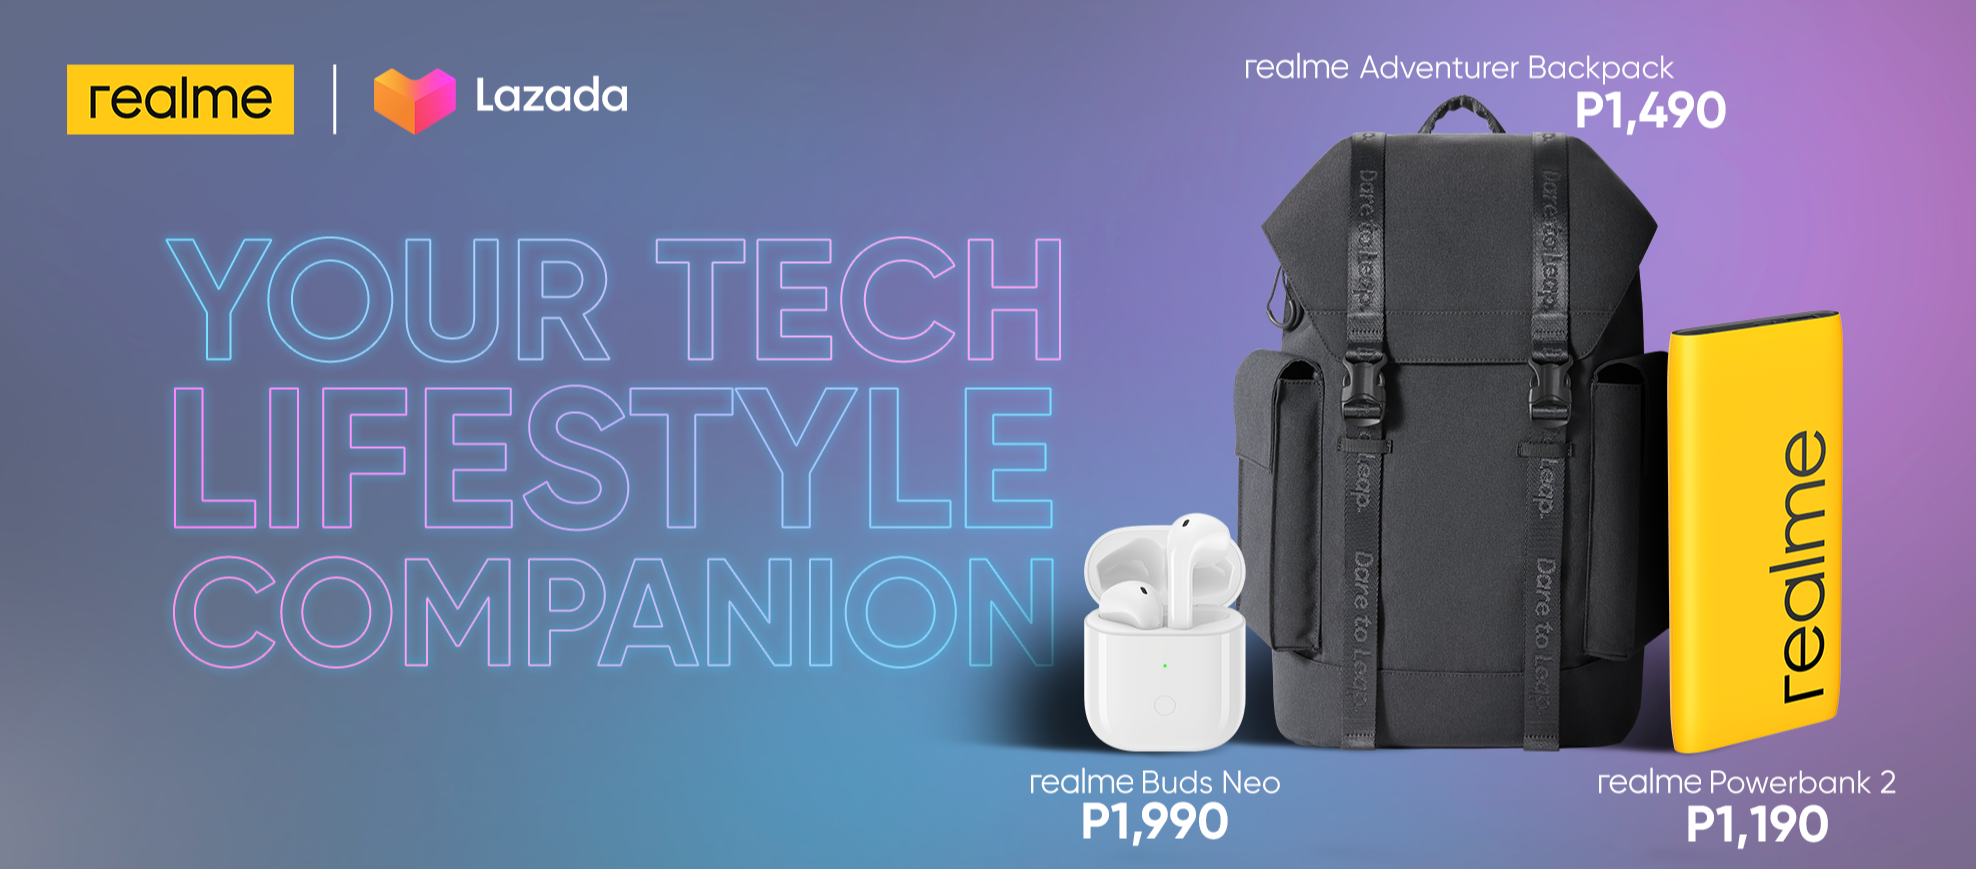 realme-buds-air-neo-powerbank-2-adventure-backpack-official-price-release-date-availability-philippines